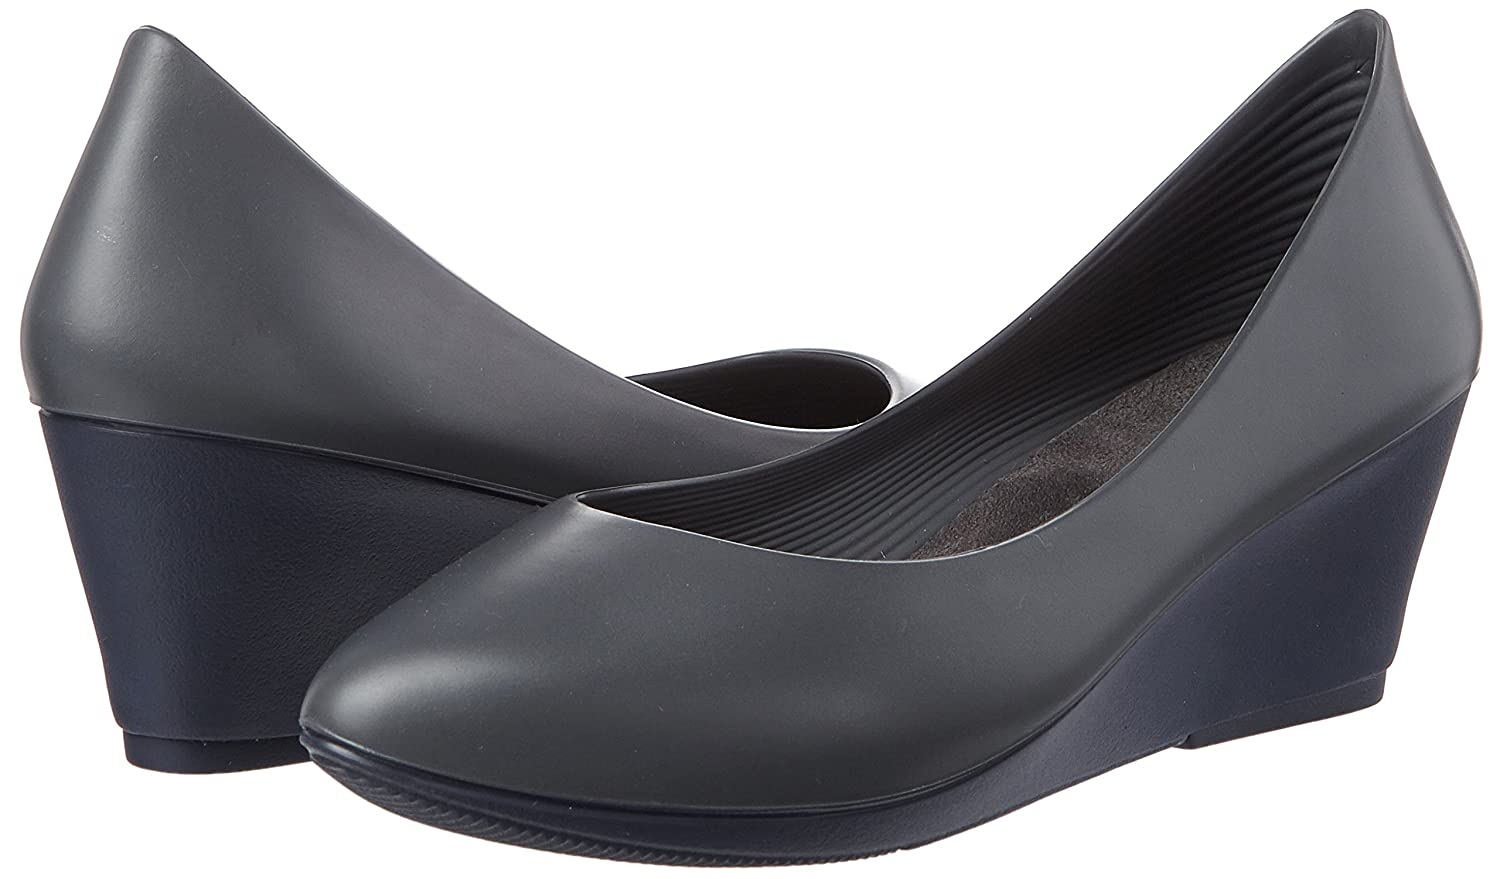 Walk&rest Wedge Damen Wedge Walk&rest Geschlossene Ballerinas Grau (Grau) 45194f